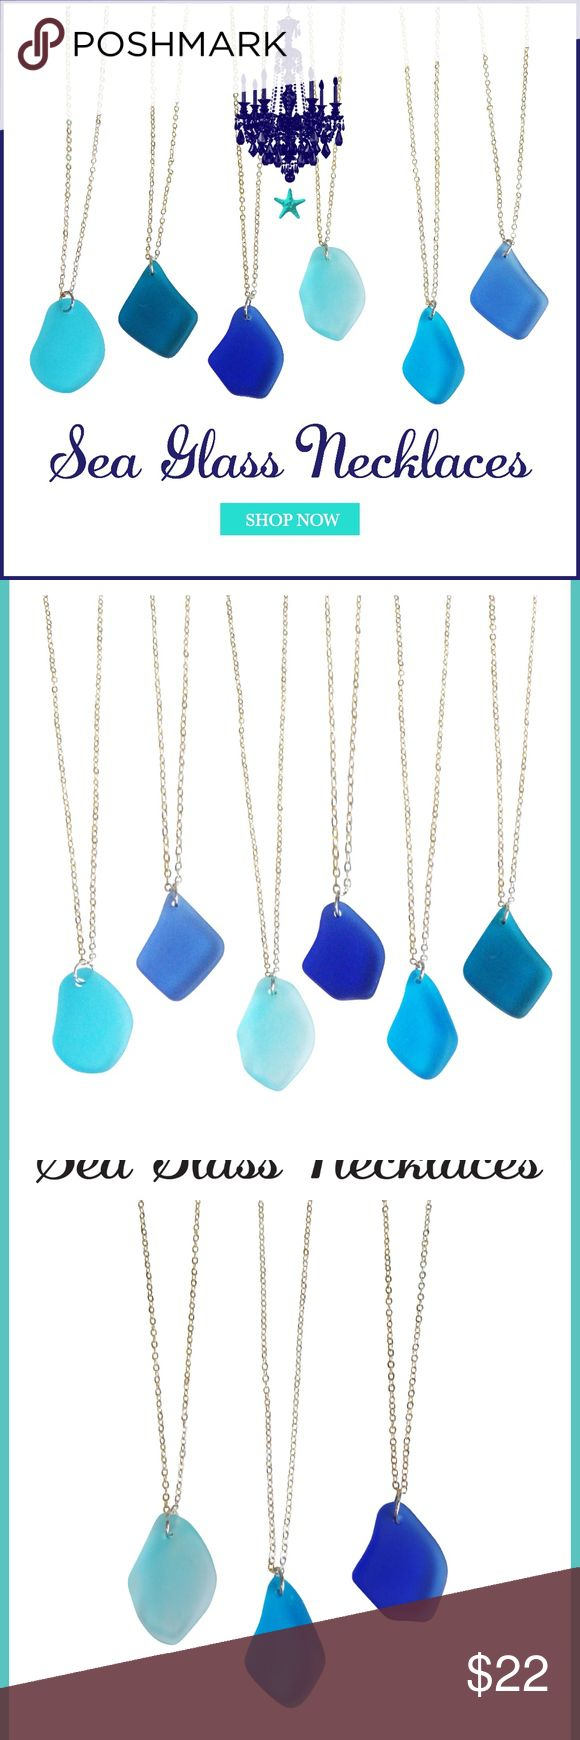 Choose Your Color Sea Glass Necklaces Sea glass Necklaces are perfect to wear on vacations,spring and summer.  These make perfect inexpensive unique gifts,housewarming gifts and also the great beach bridesmaid gifts and come packaged in an aqua gift box ready for gift giving. The necklaces come on a gold plated 17 inch thin chain  All of our sea glass jewelry is unlike natural sea glass found on the beaches, these are pieces of broken glass that have been tumbled with diamond sand and…